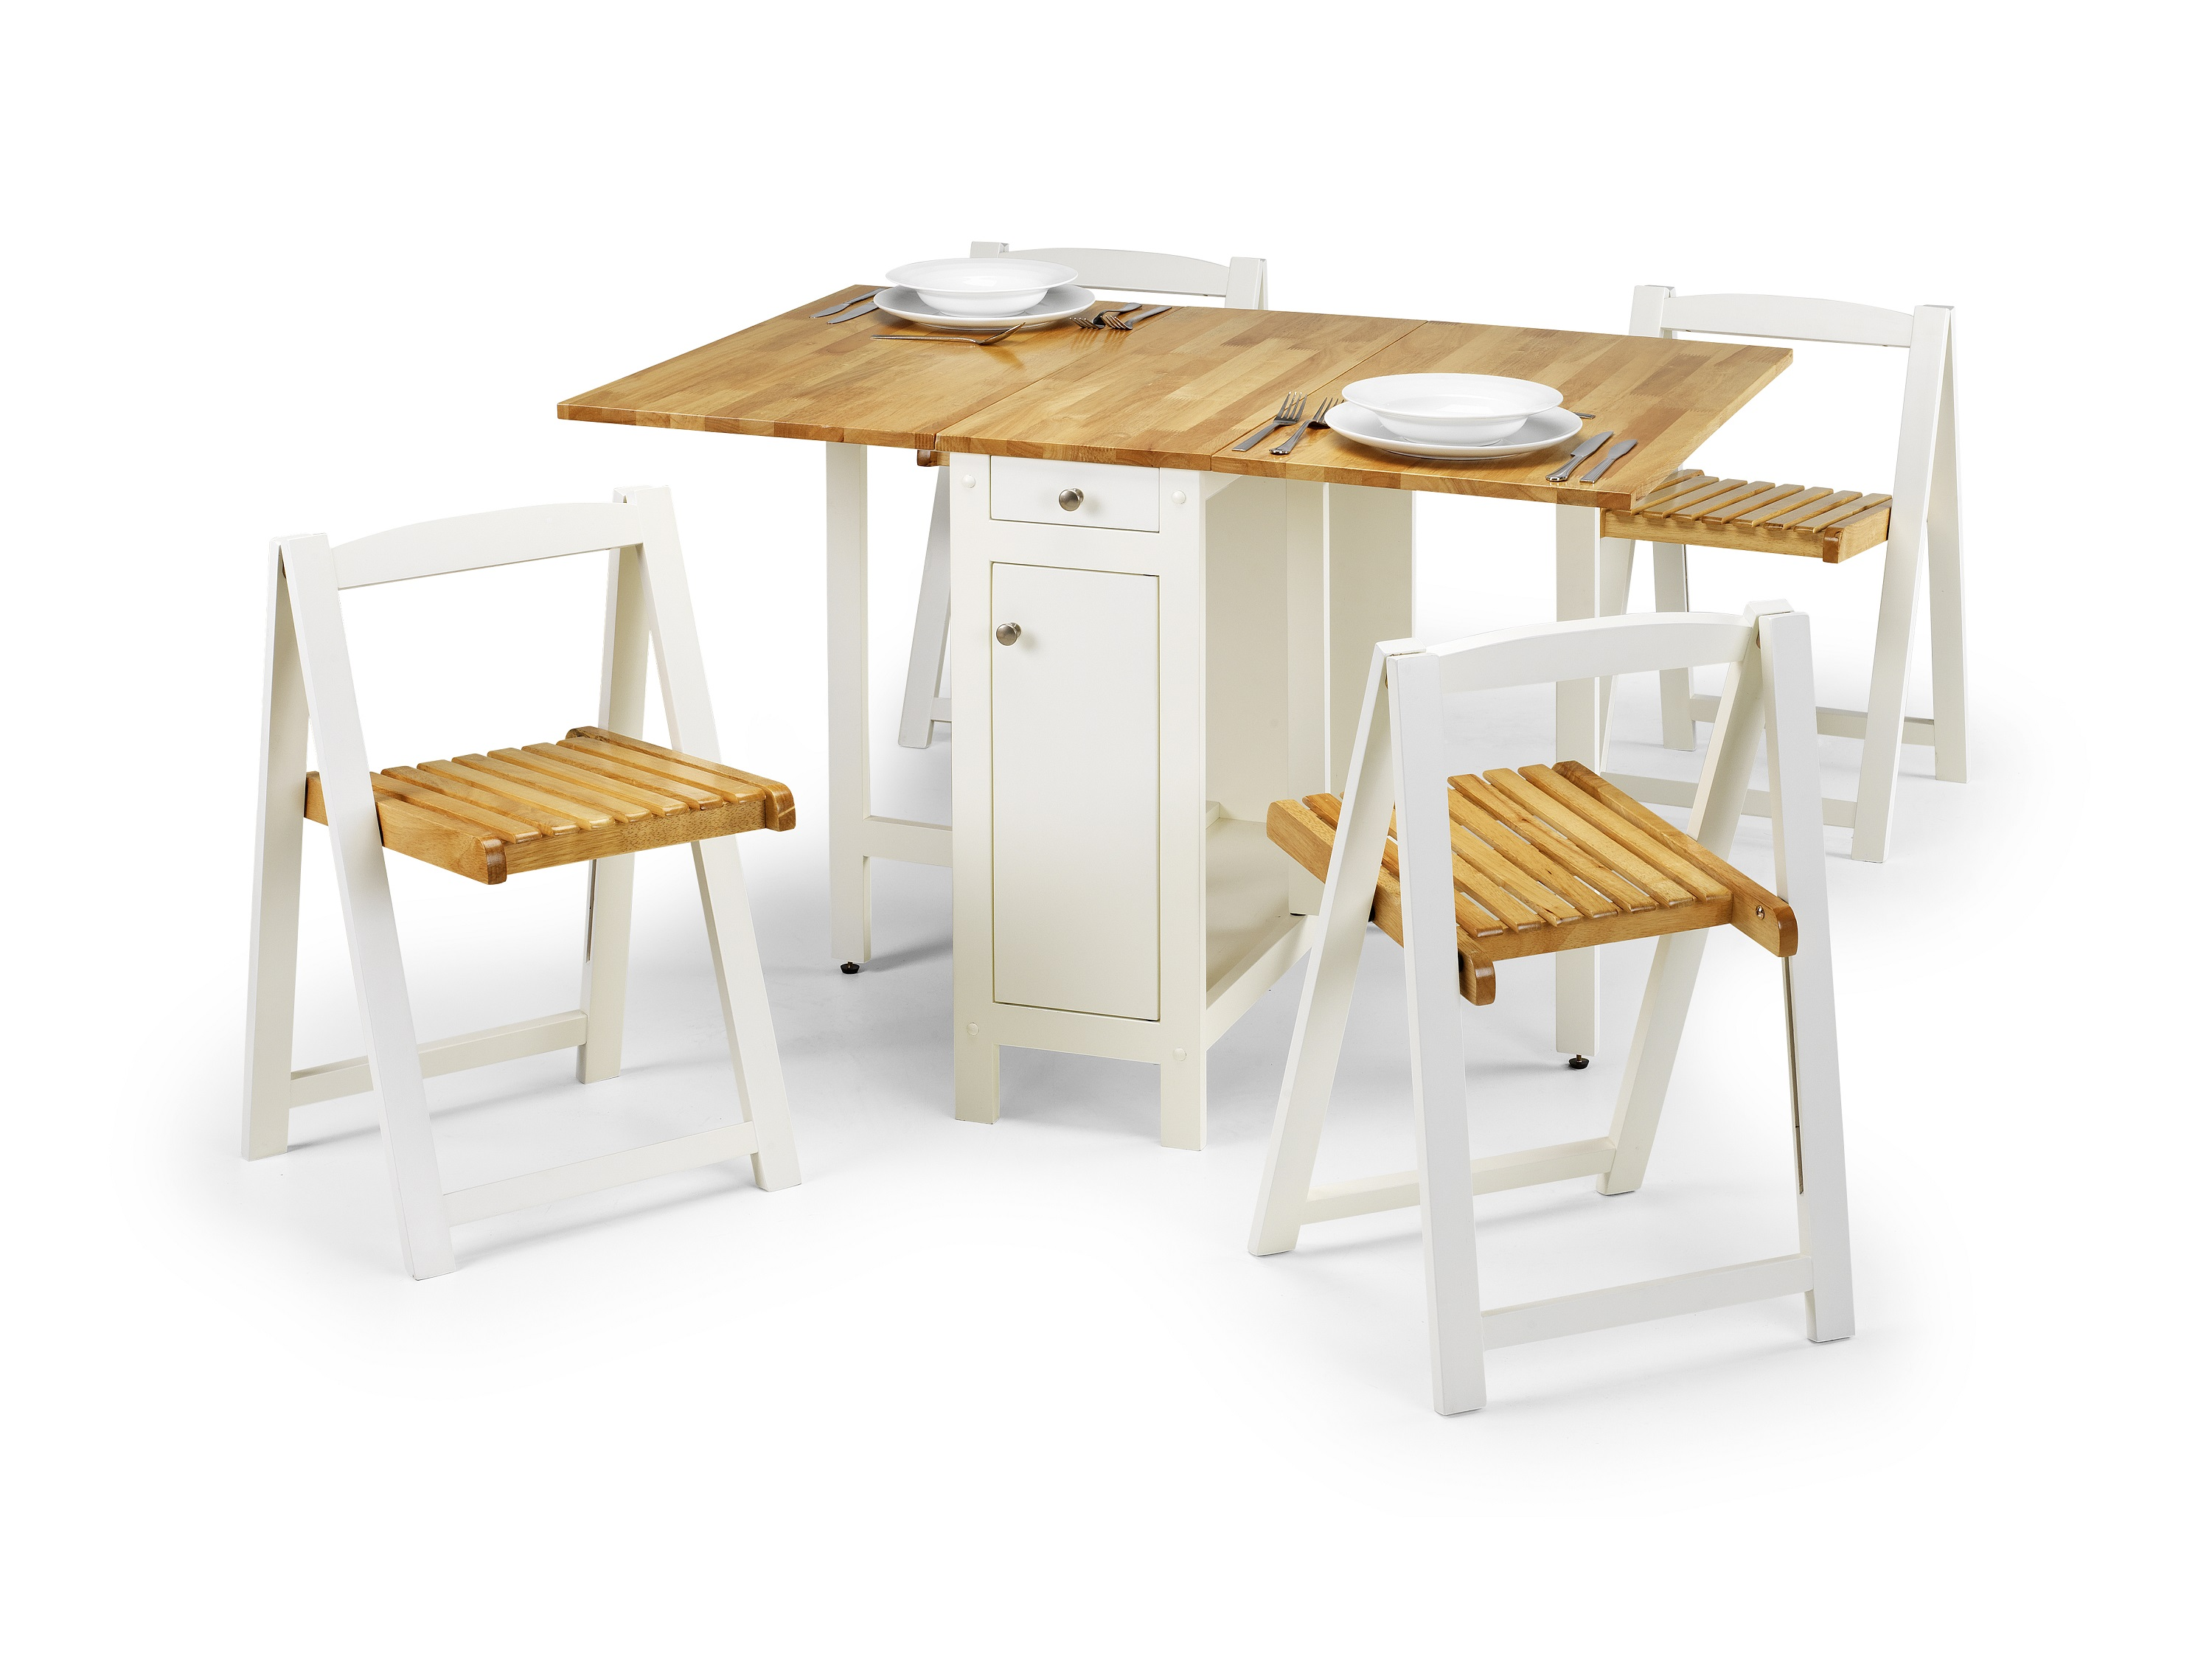 Julian Bowen Savoy Dining Set in White and Natural Finish £189